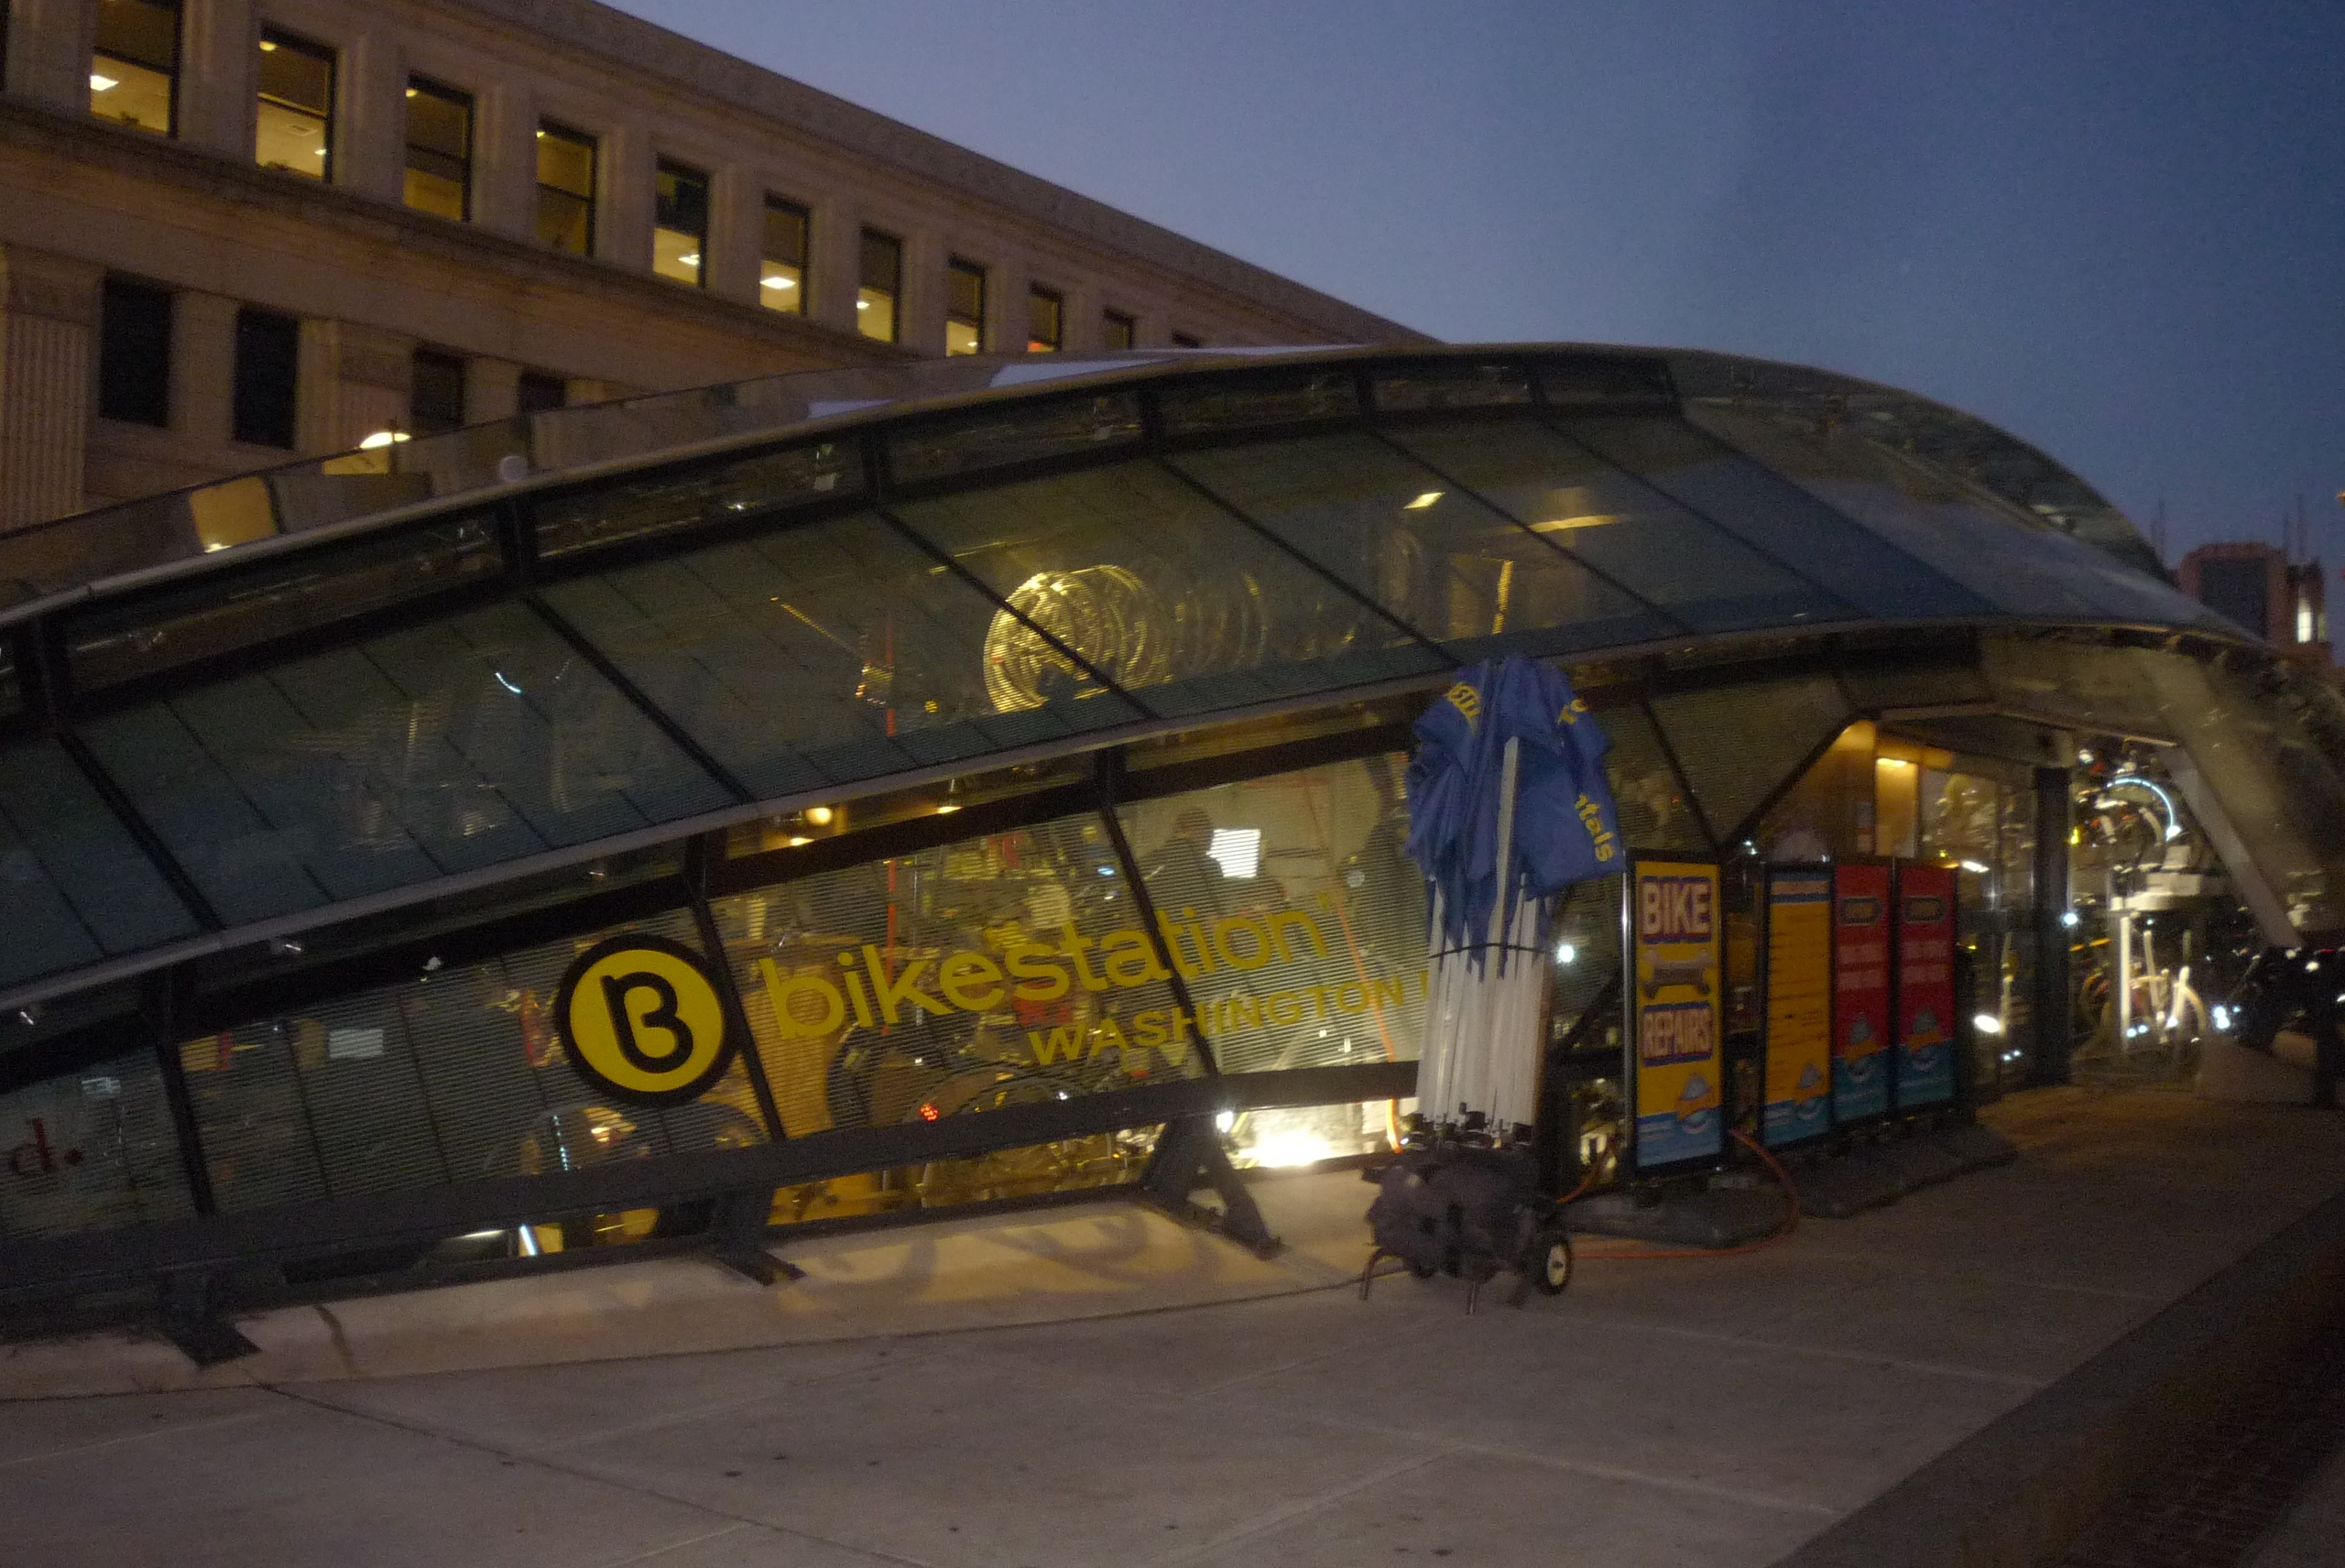 <i>Bikestation, Washington, DC </i>, 24-hour indoor parking/service facility for